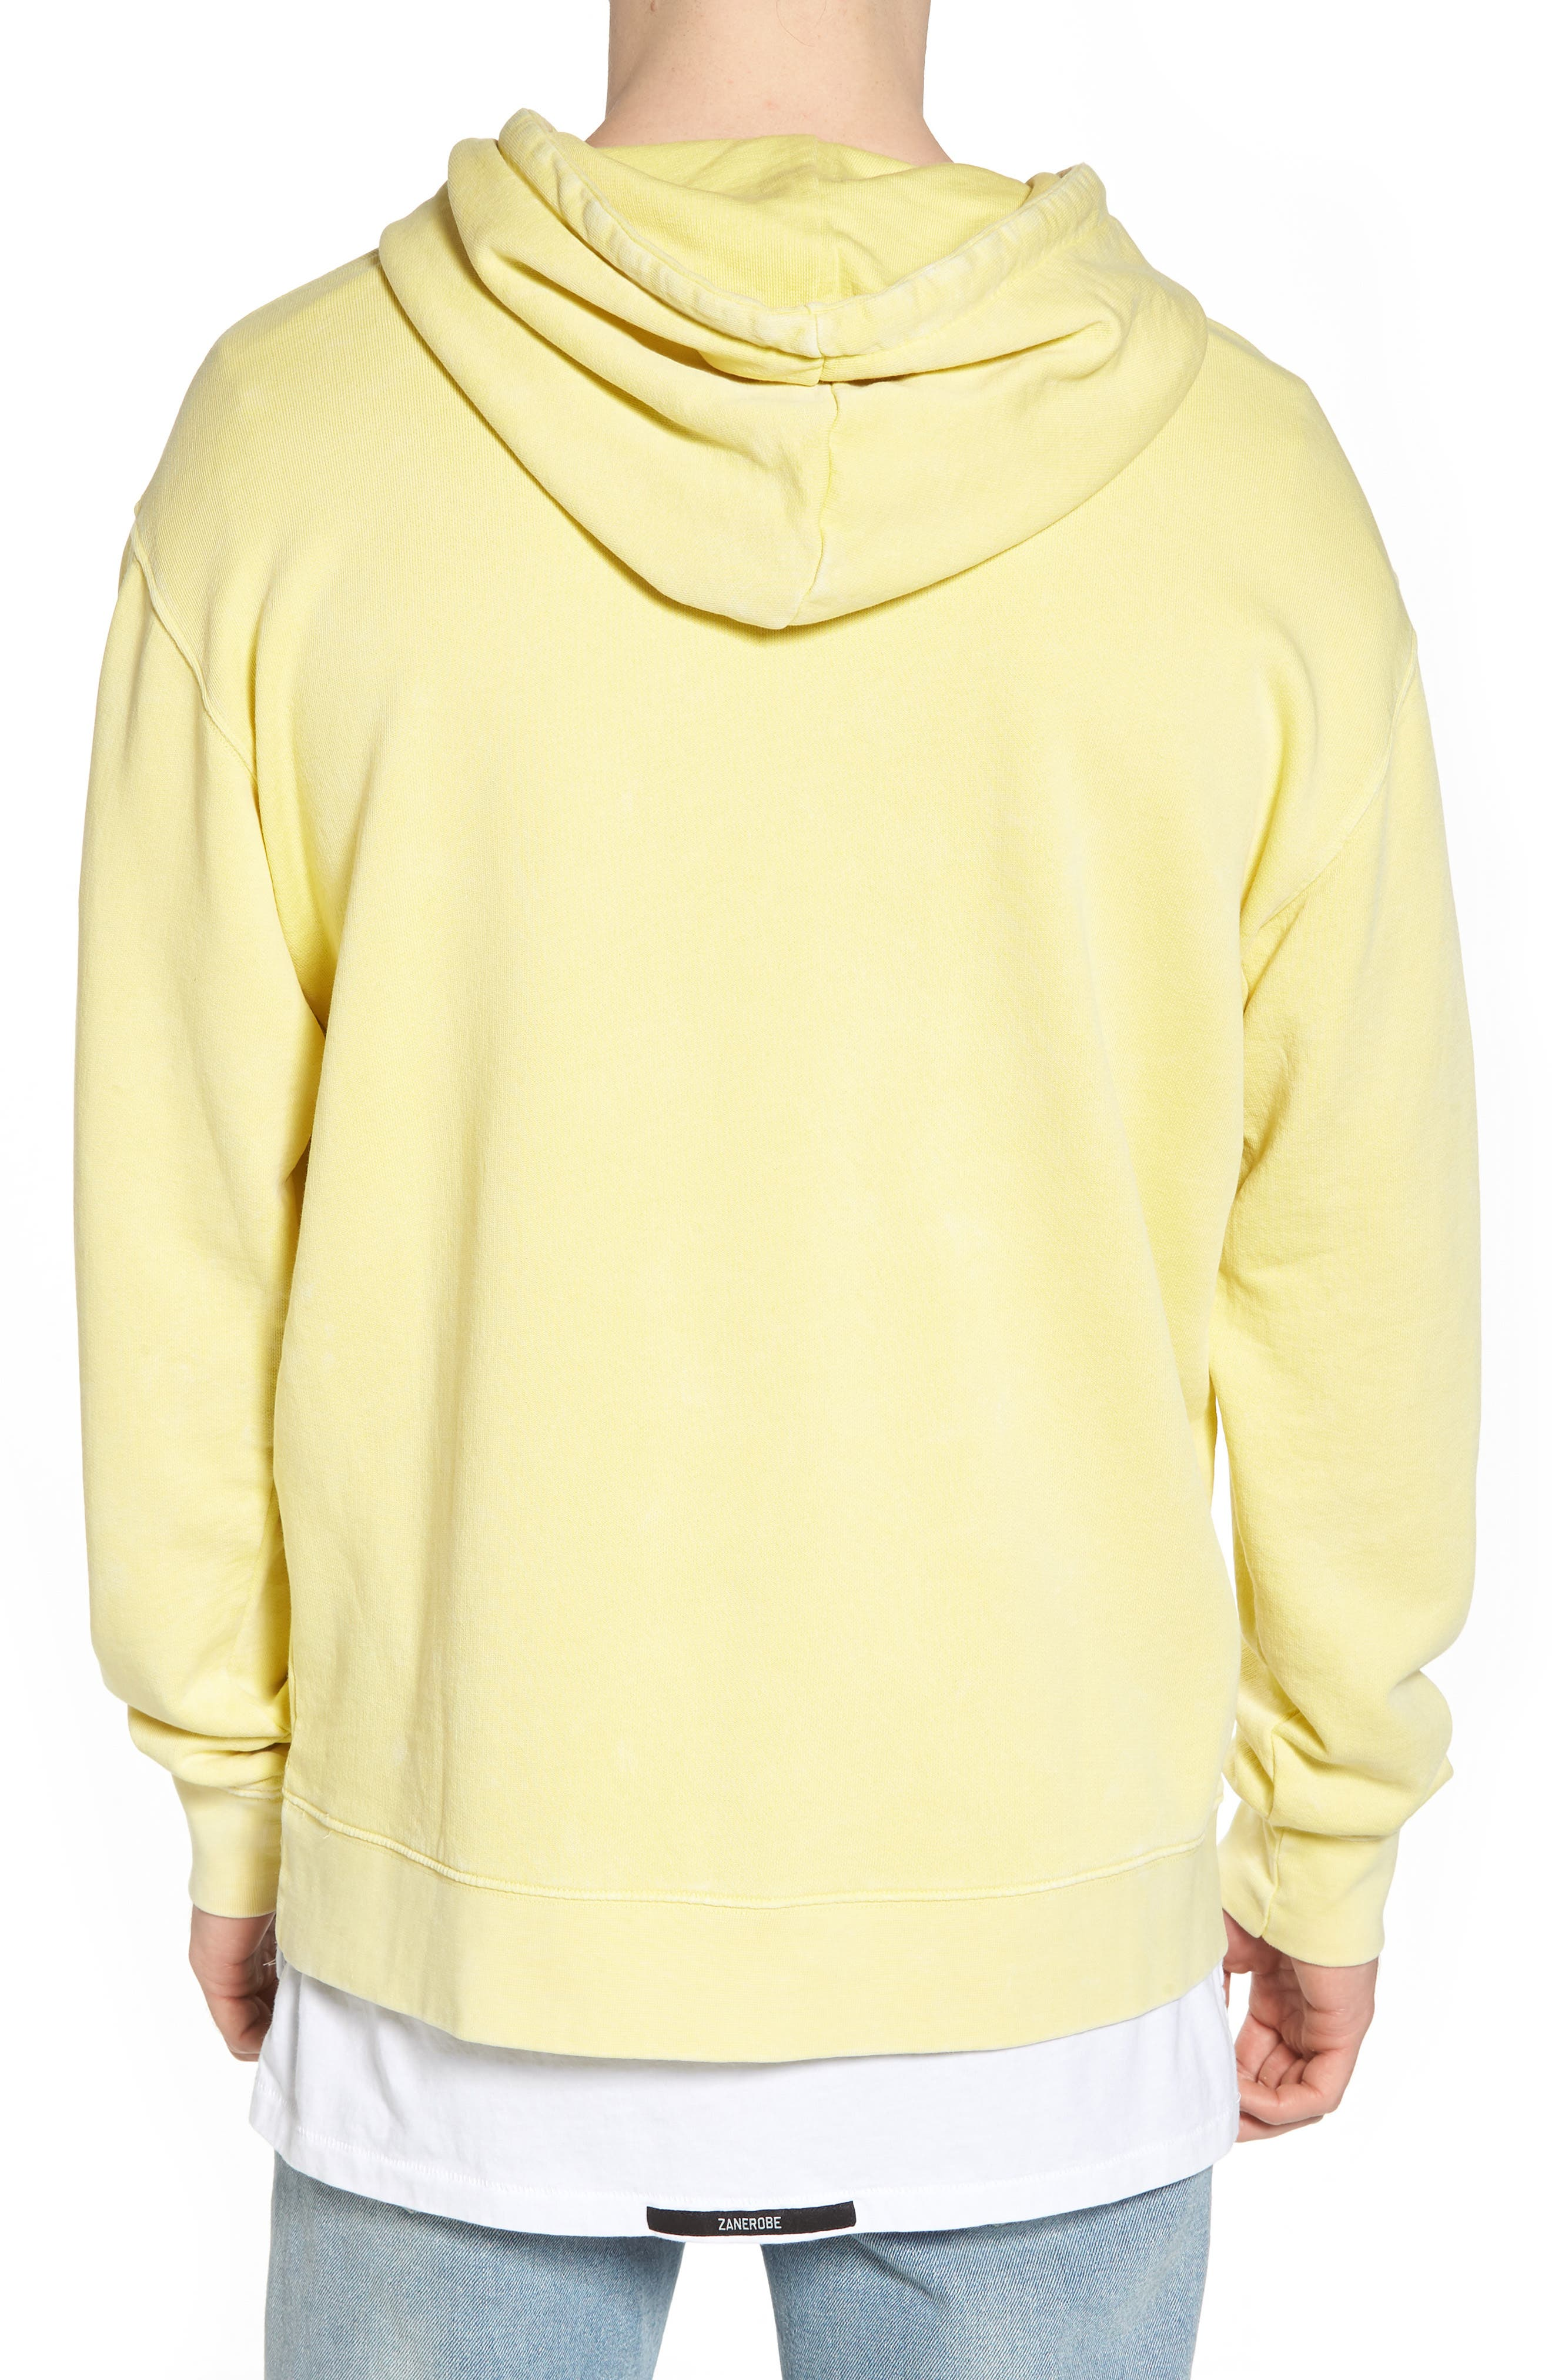 Faded Pigment Dyed Hoodie Sweatshirt,                             Alternate thumbnail 2, color,                             Yellow